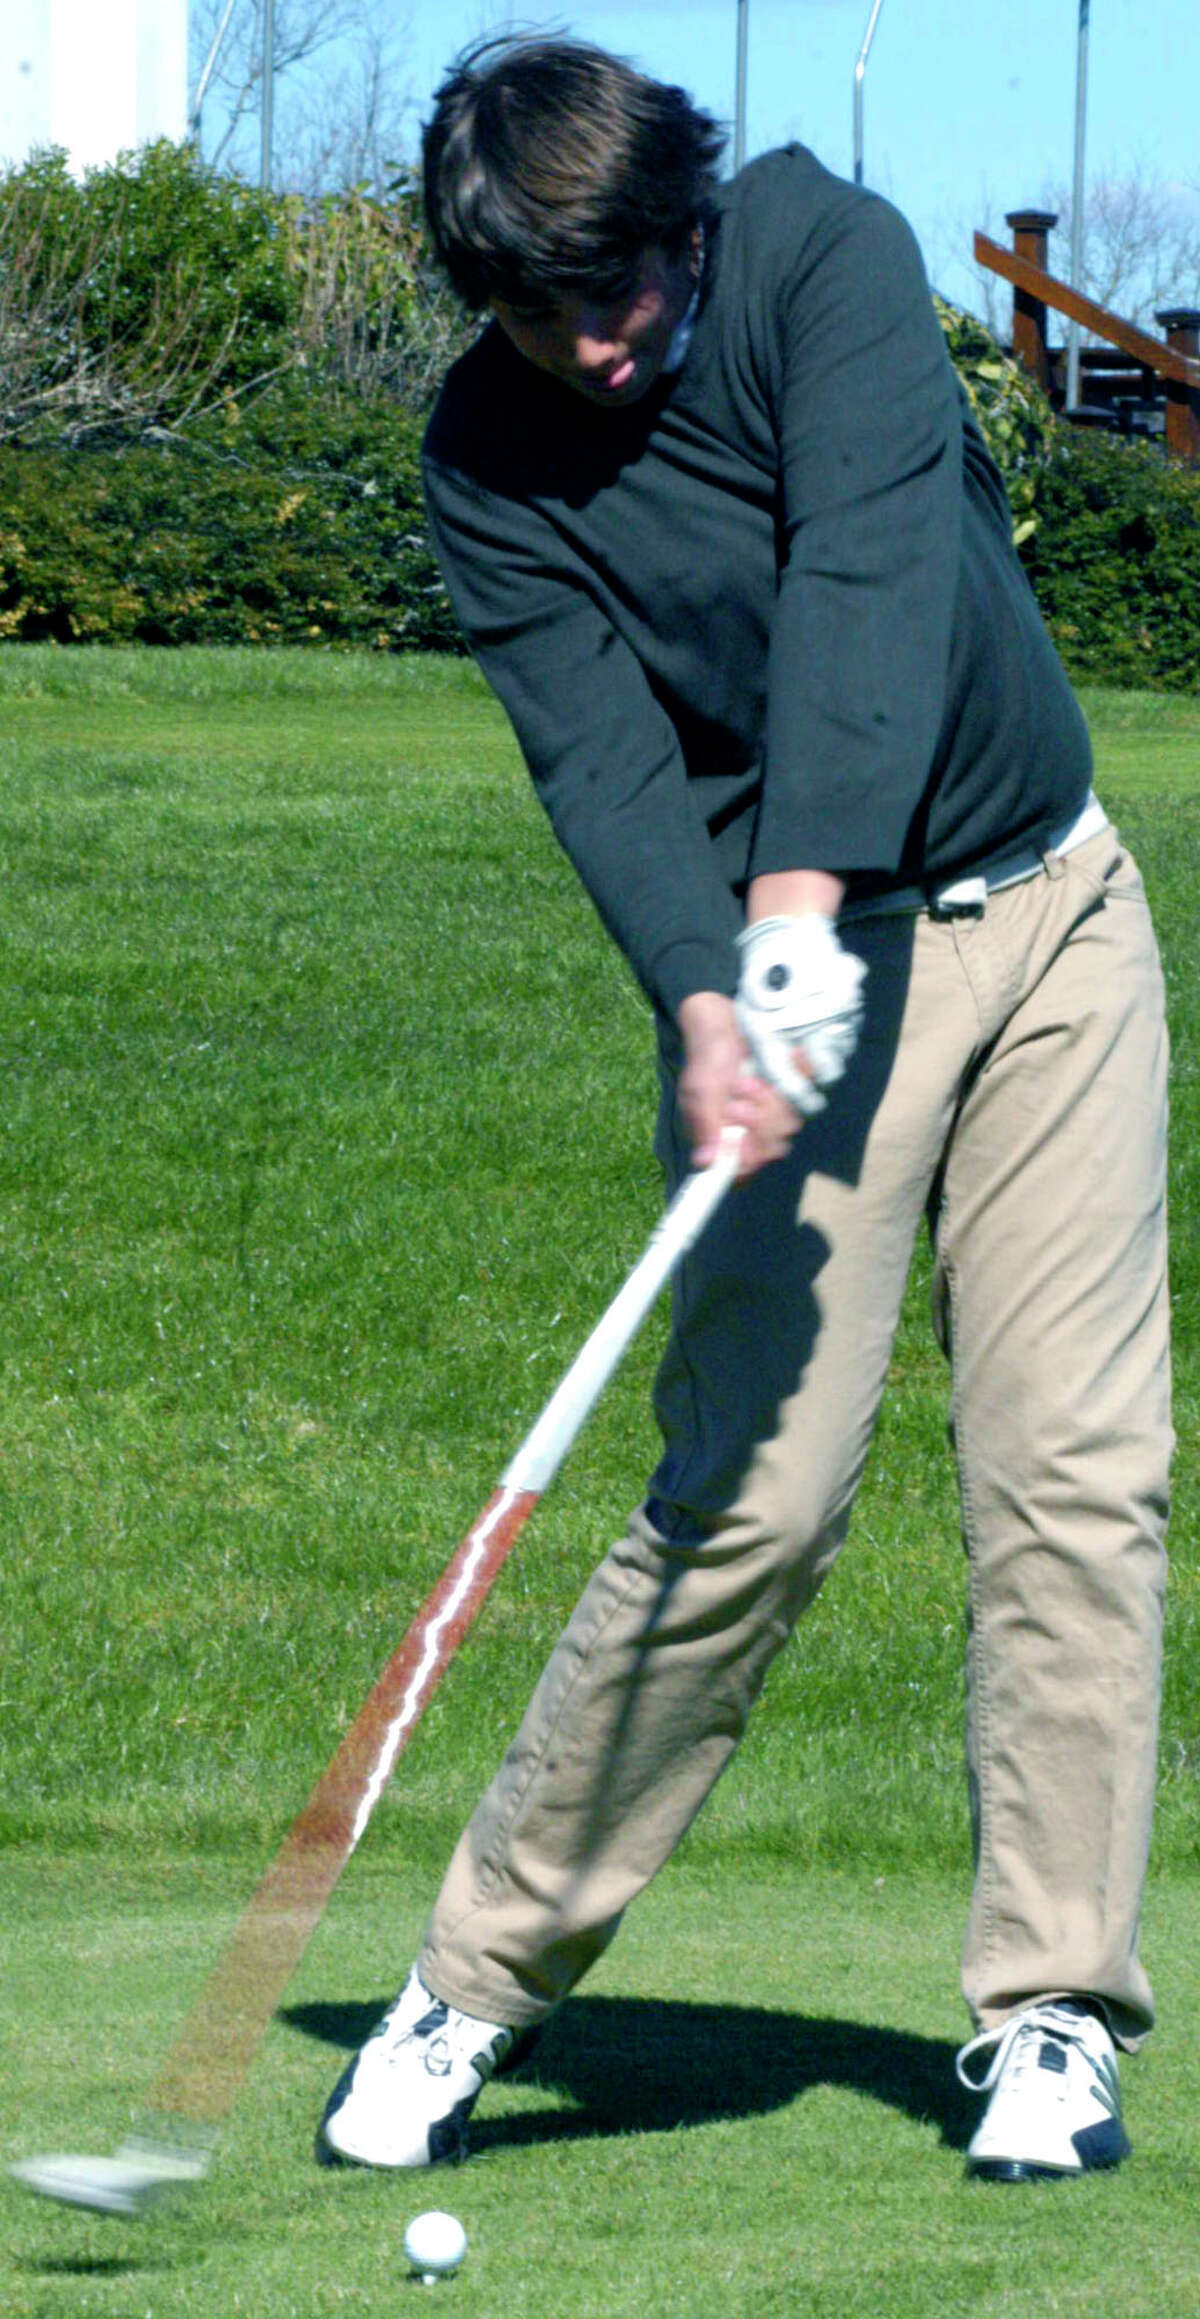 SPECTRUM/Robert McCarthy of the Spartans demonstrates impressive torque as he practices for the Shepaug Valley High School golf season. April 2012